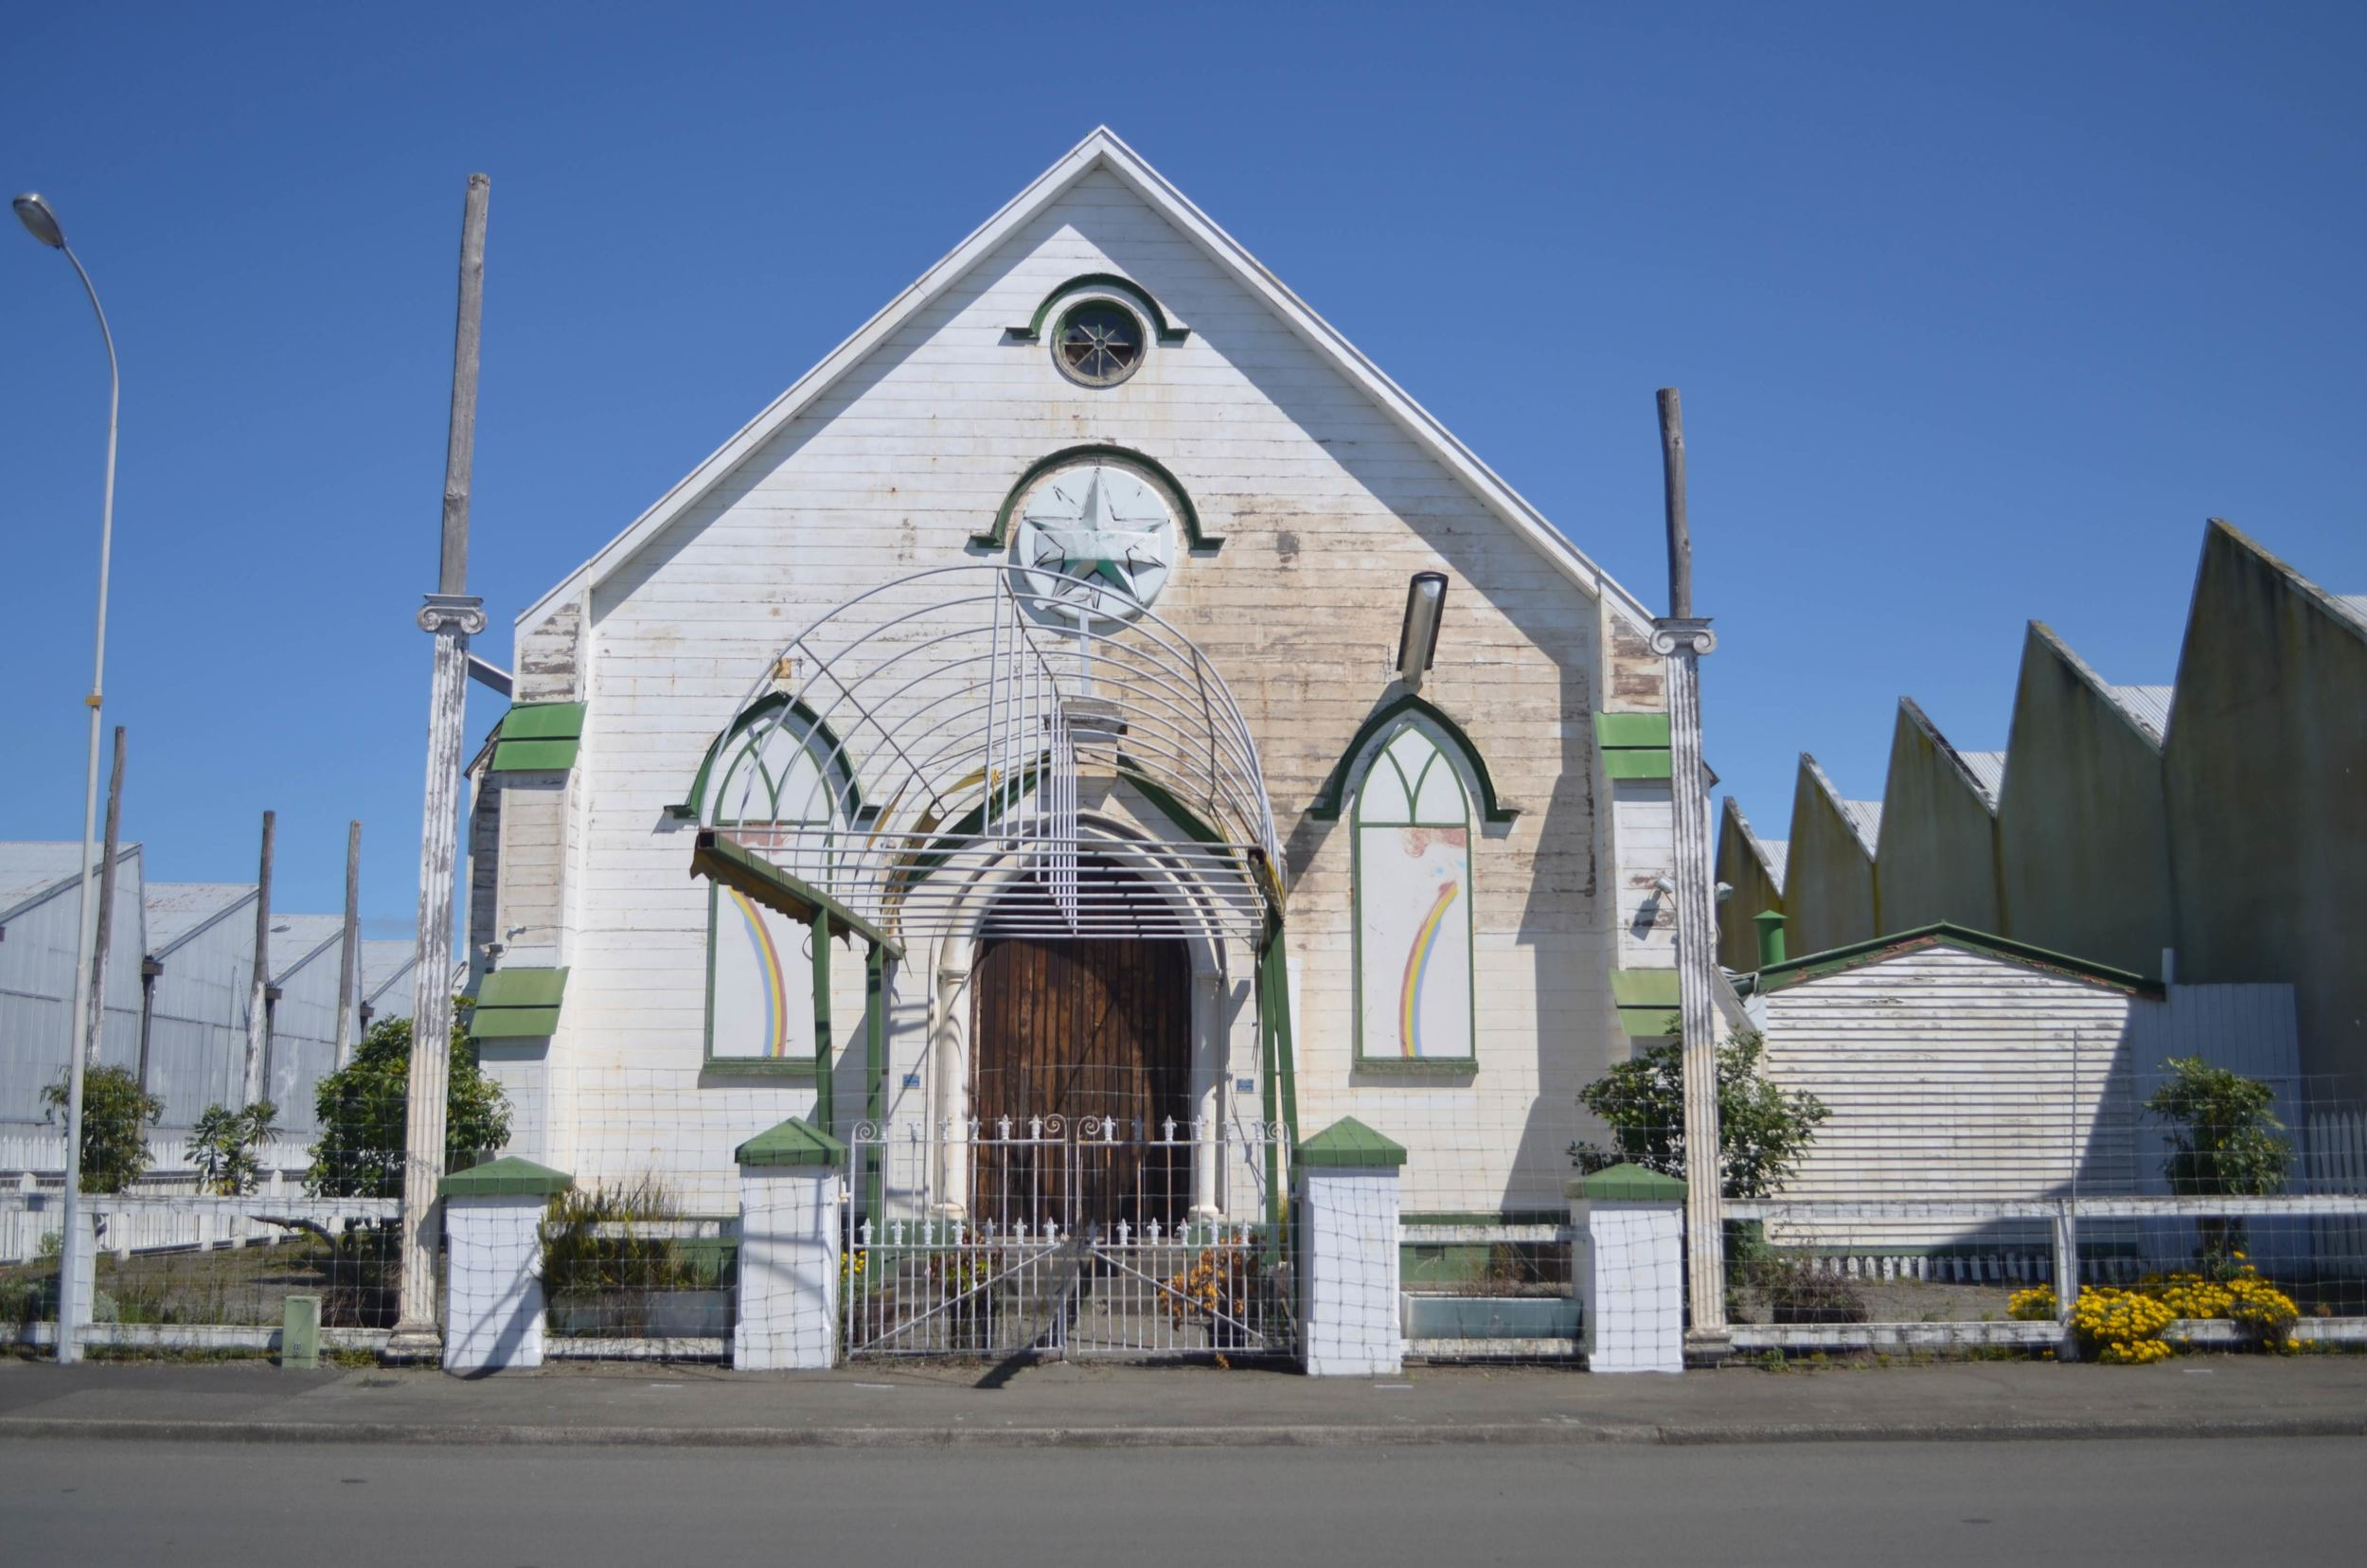 An abandoned church sandwiched between the wool stores in Ahuriri.